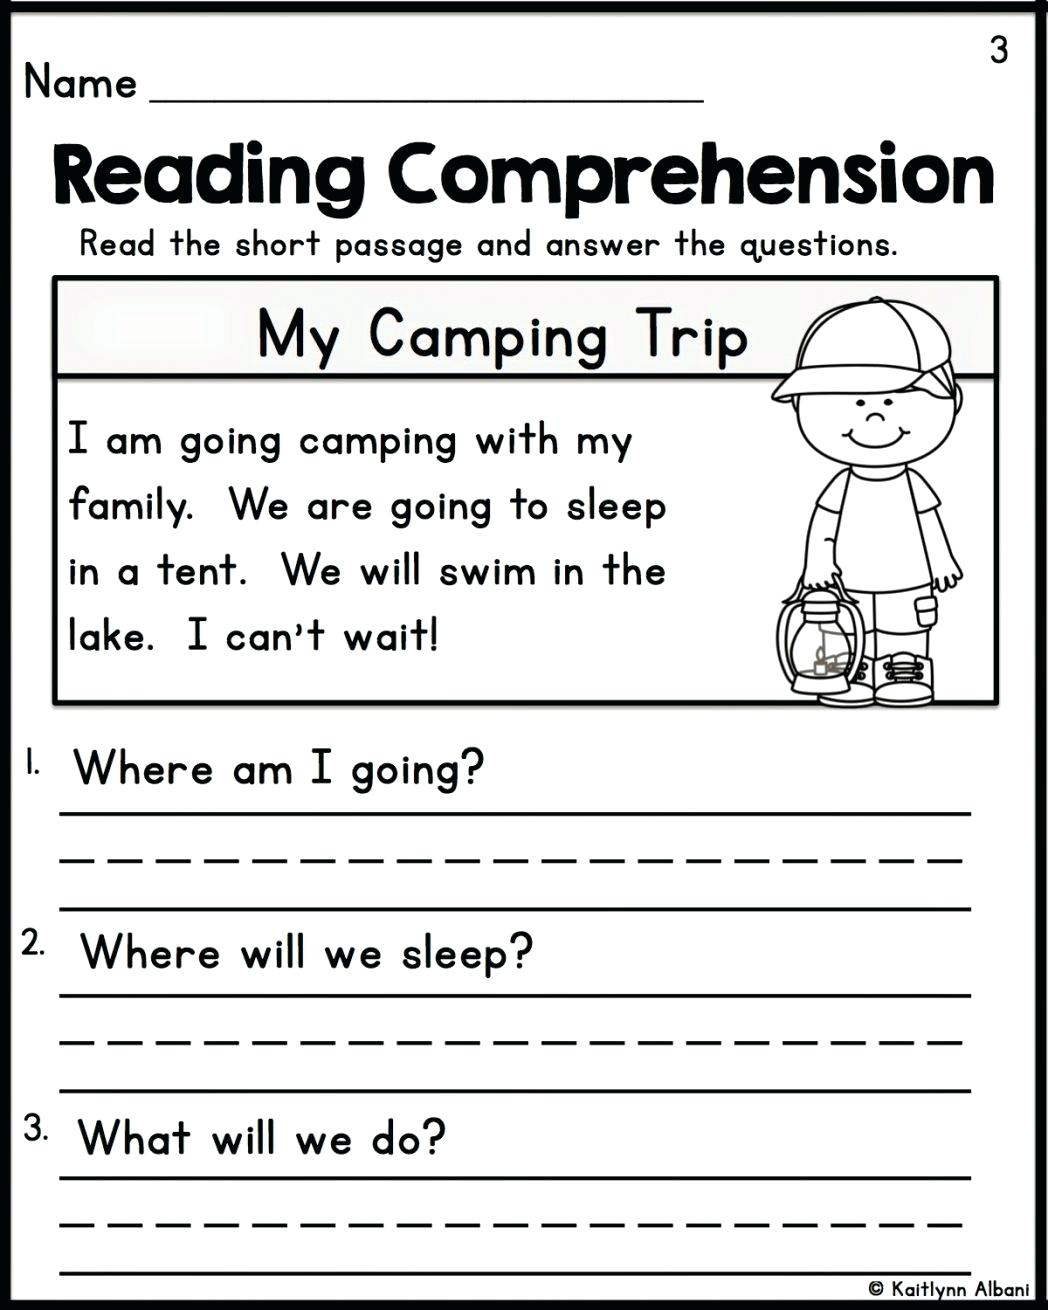 Worksheet Year 1 Reading Comprehension Worksheets Tes Year 1 Worksheets Samples